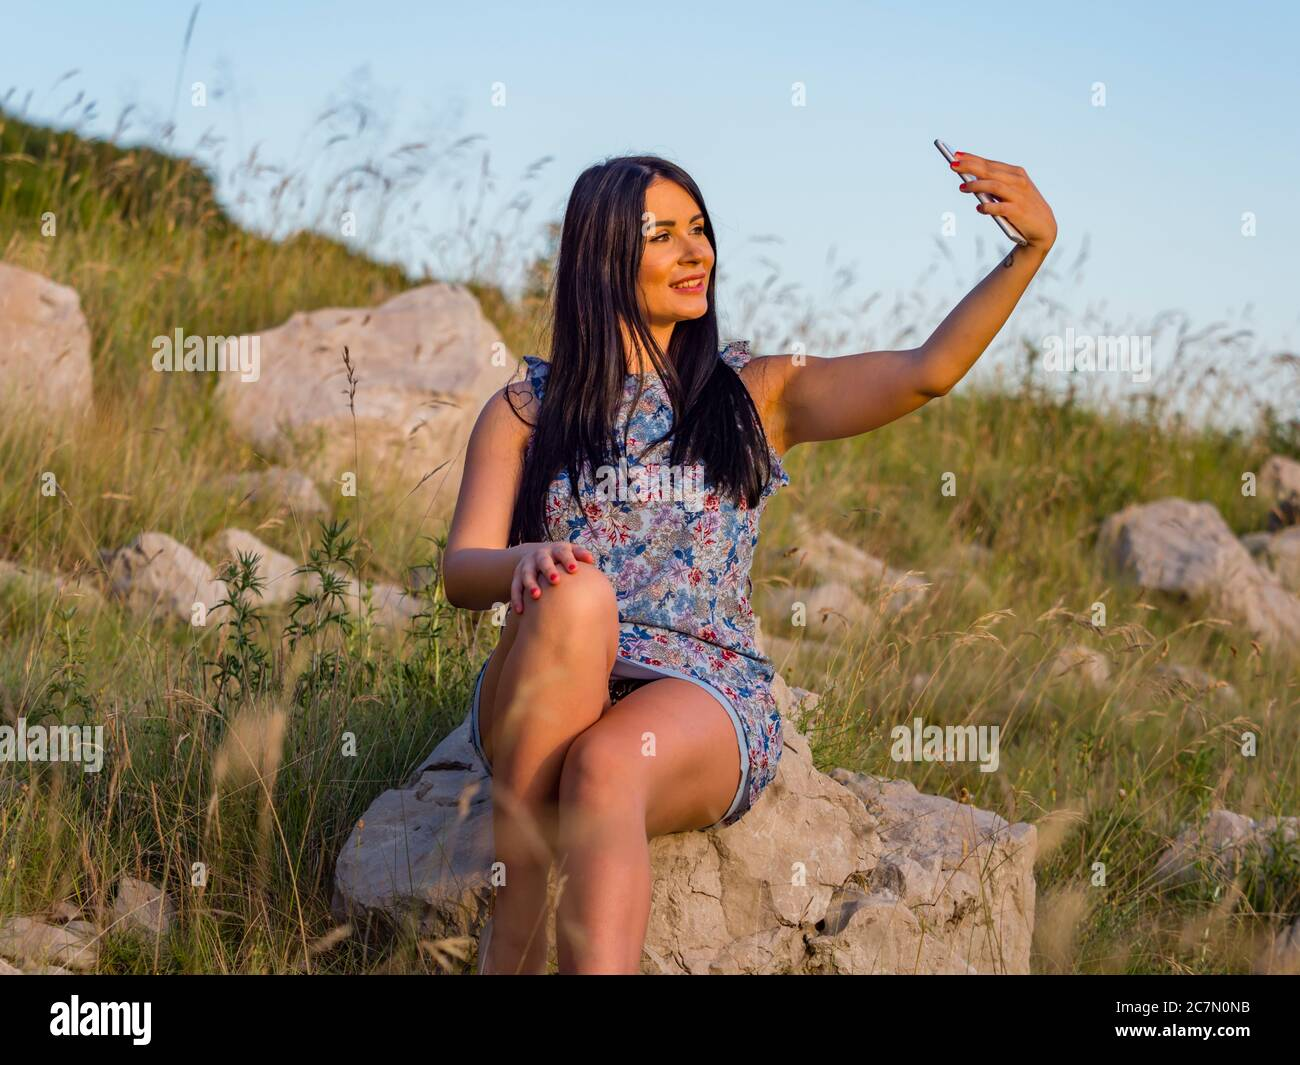 Selfie in nature using hand holding smartphone teengirl is sitting on rock in natural environment slight smile optimistic Stock Photo